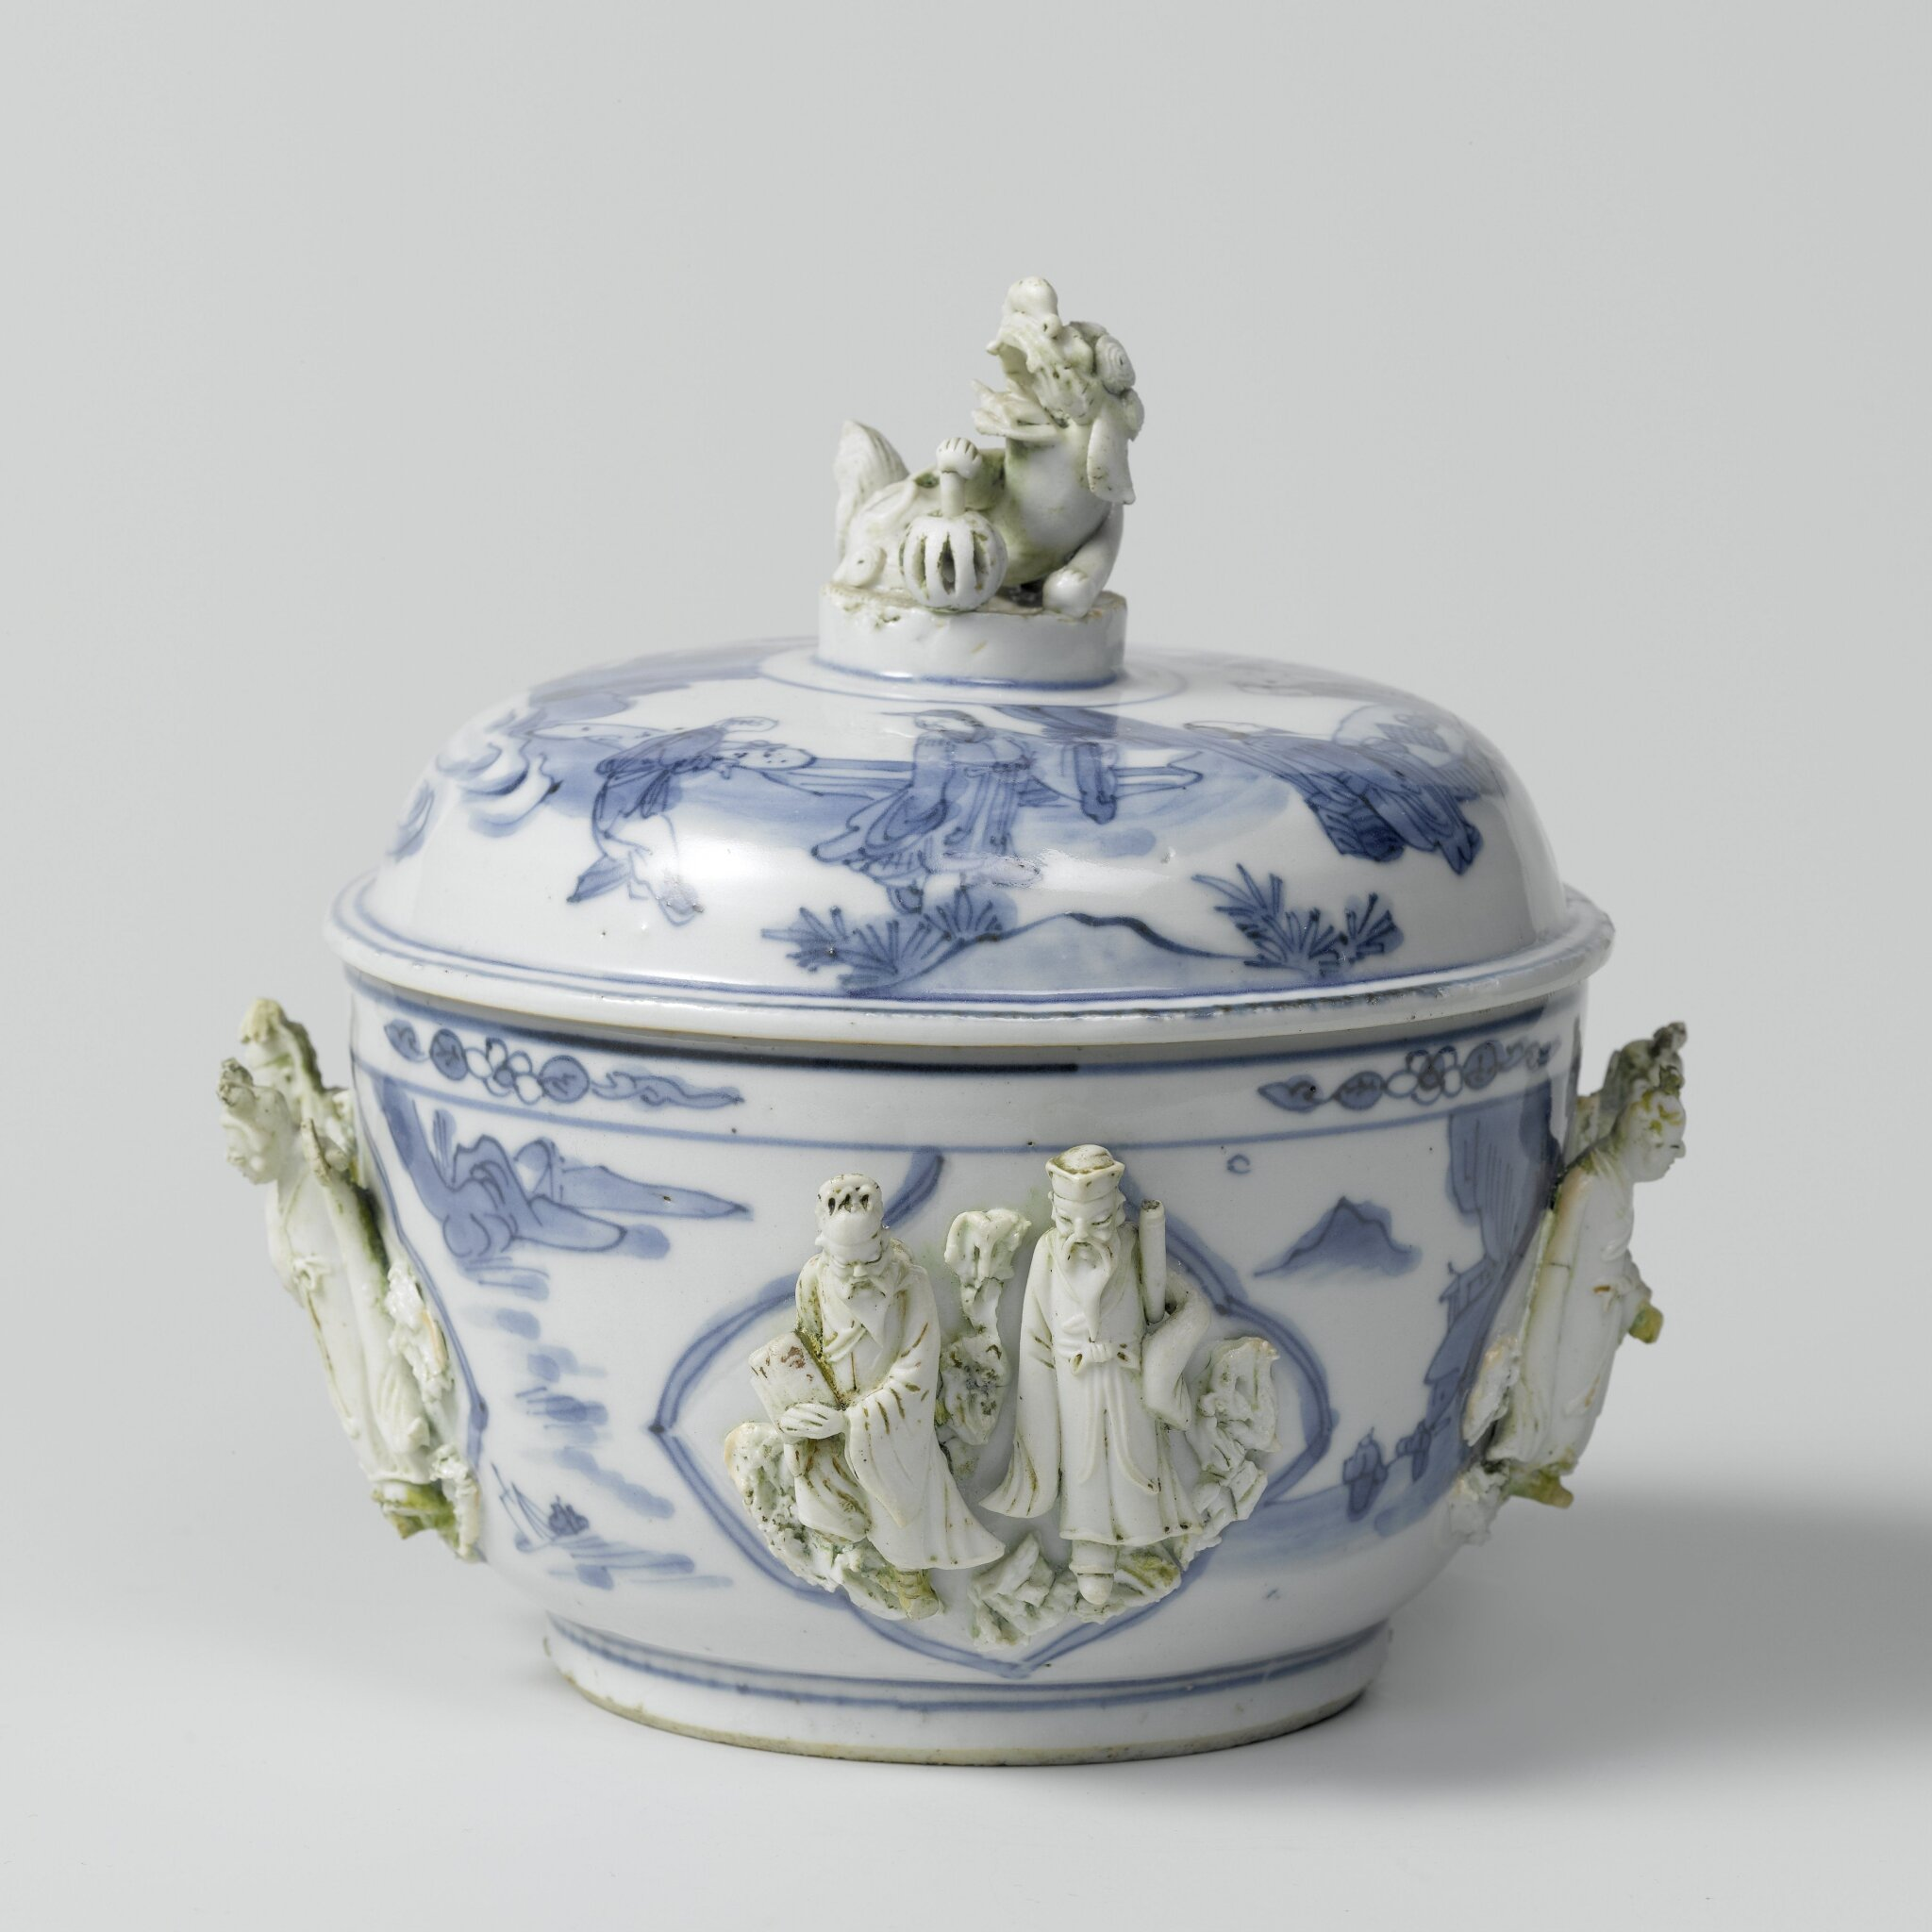 Lidded pot, China, Transition period, c